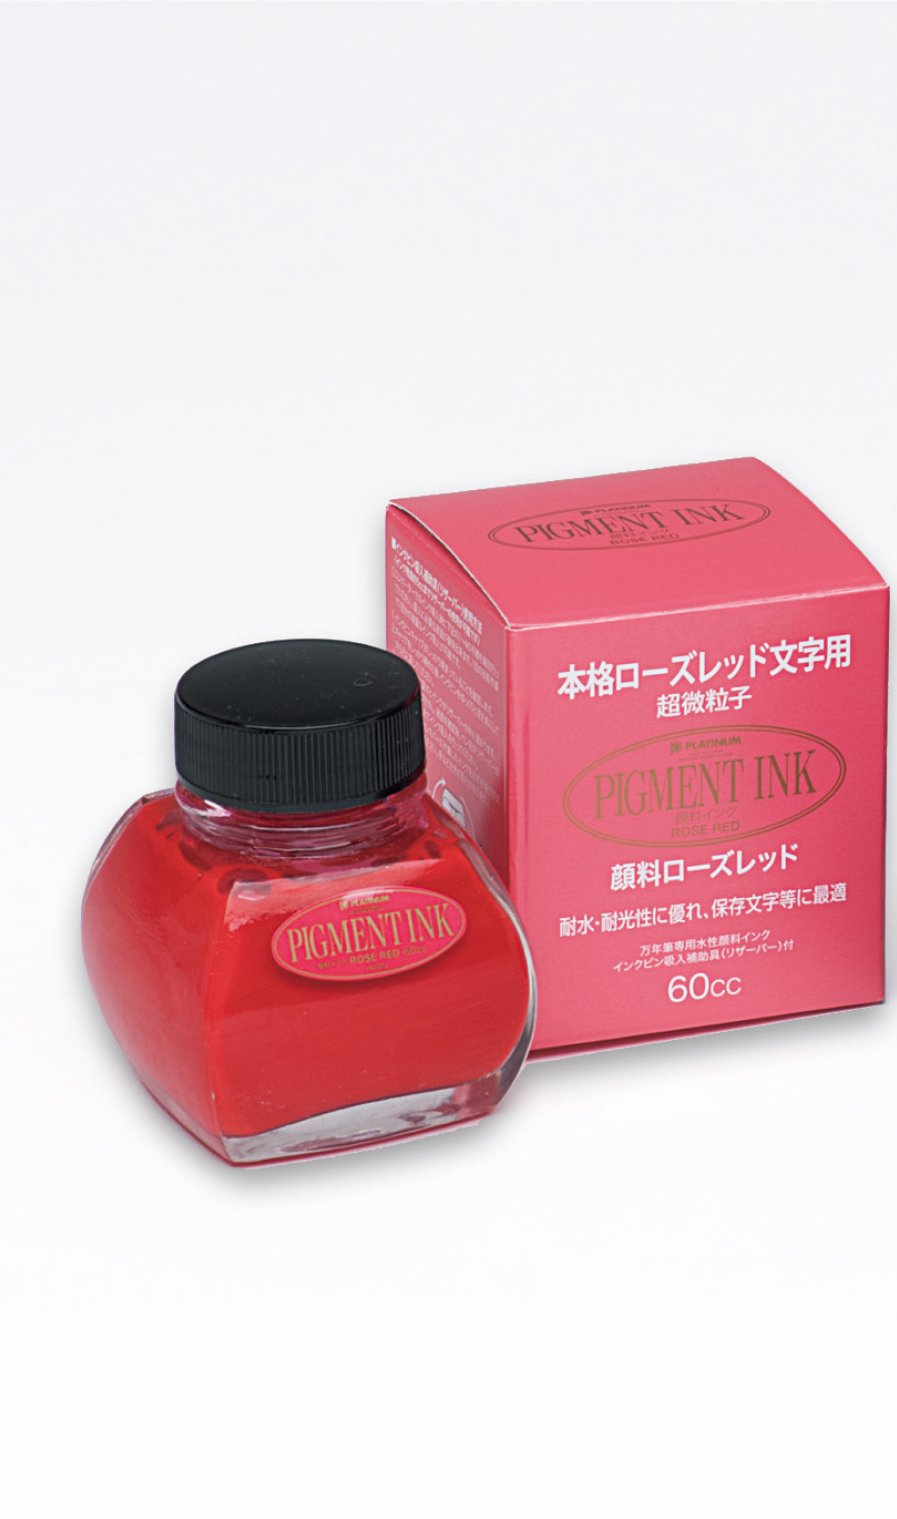 Platinum Pigment Ink Bottle - Platinum -  L.S.F. Group of Companies